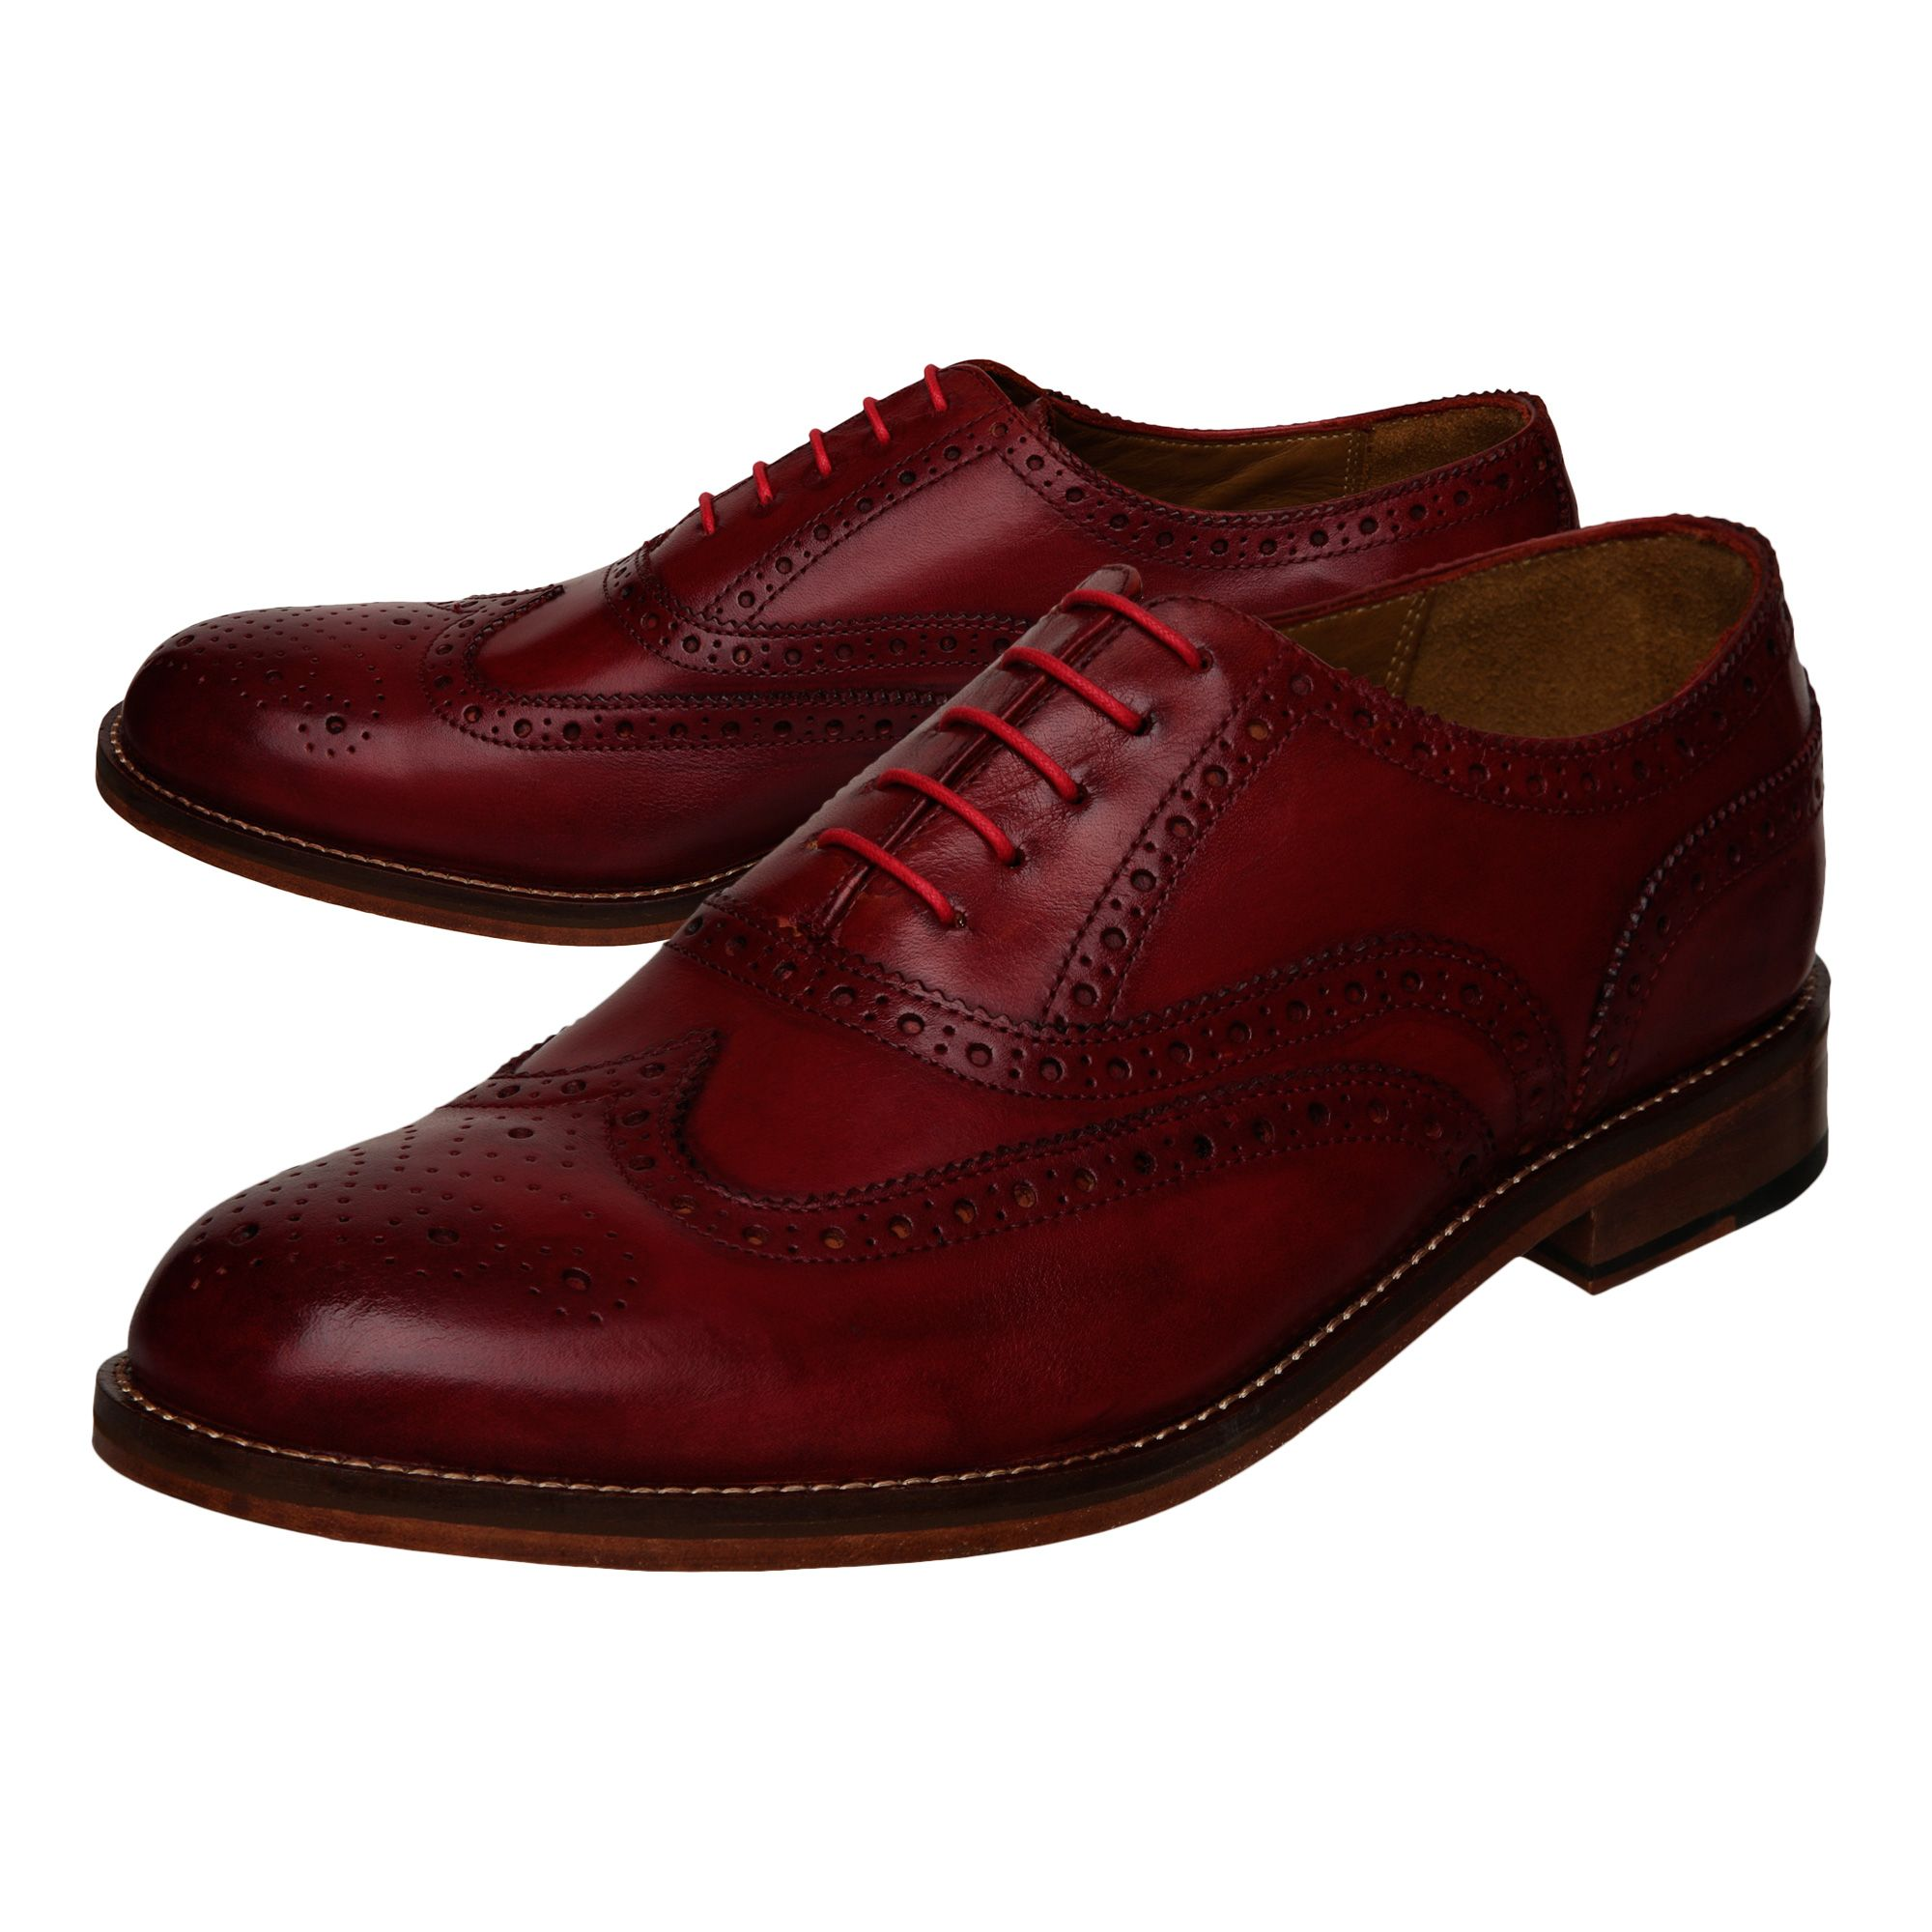 Axton leather brogues